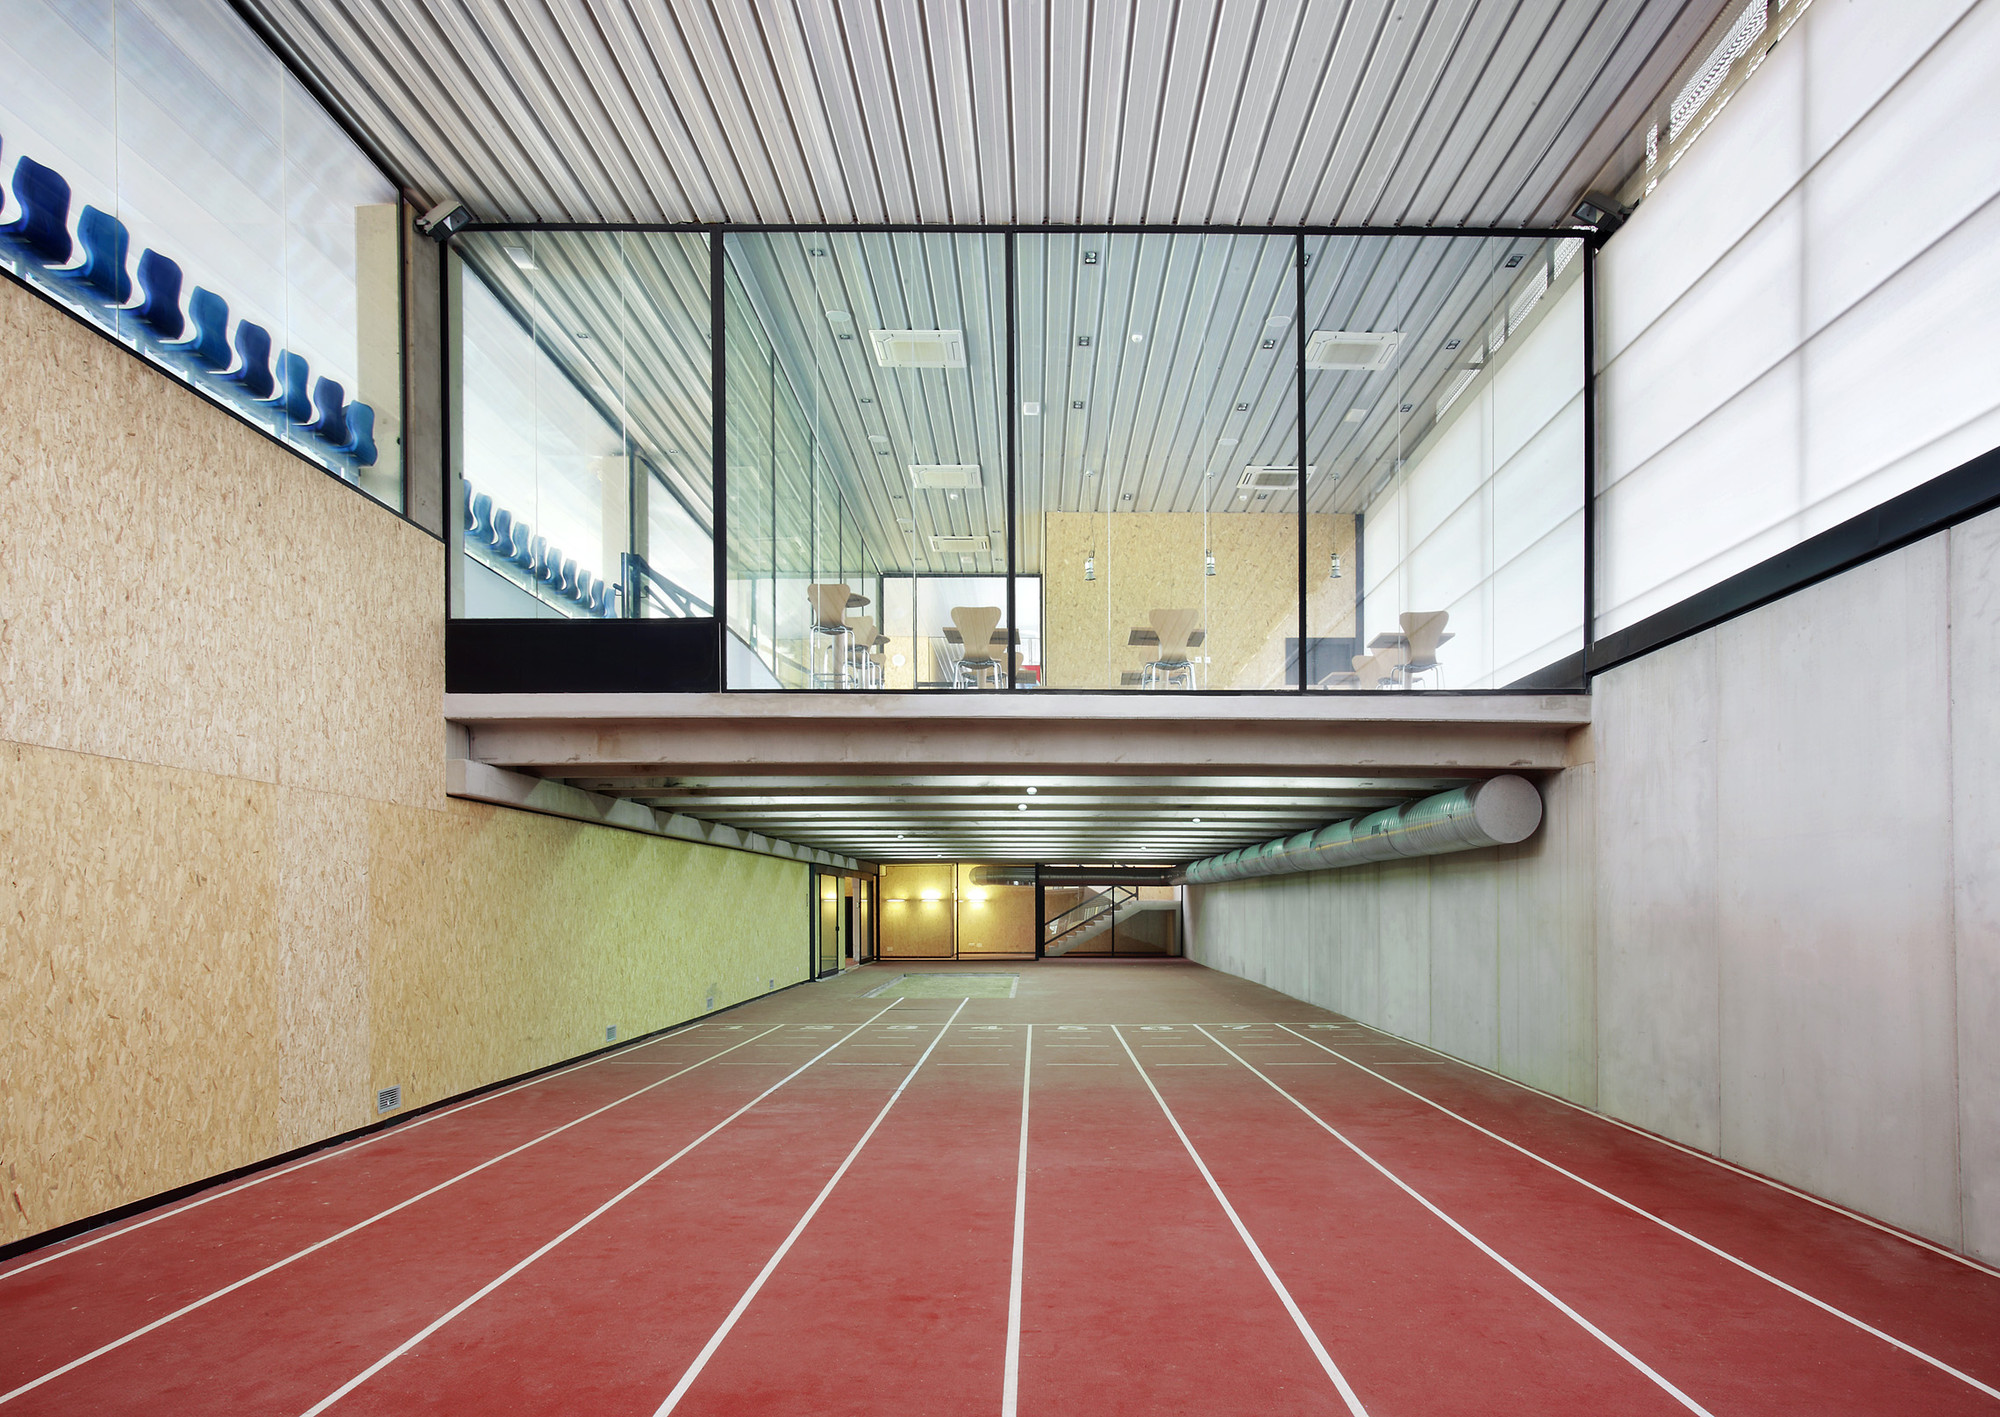 Calvi running track niu arquitectura archdaily for Classic underground house tracks